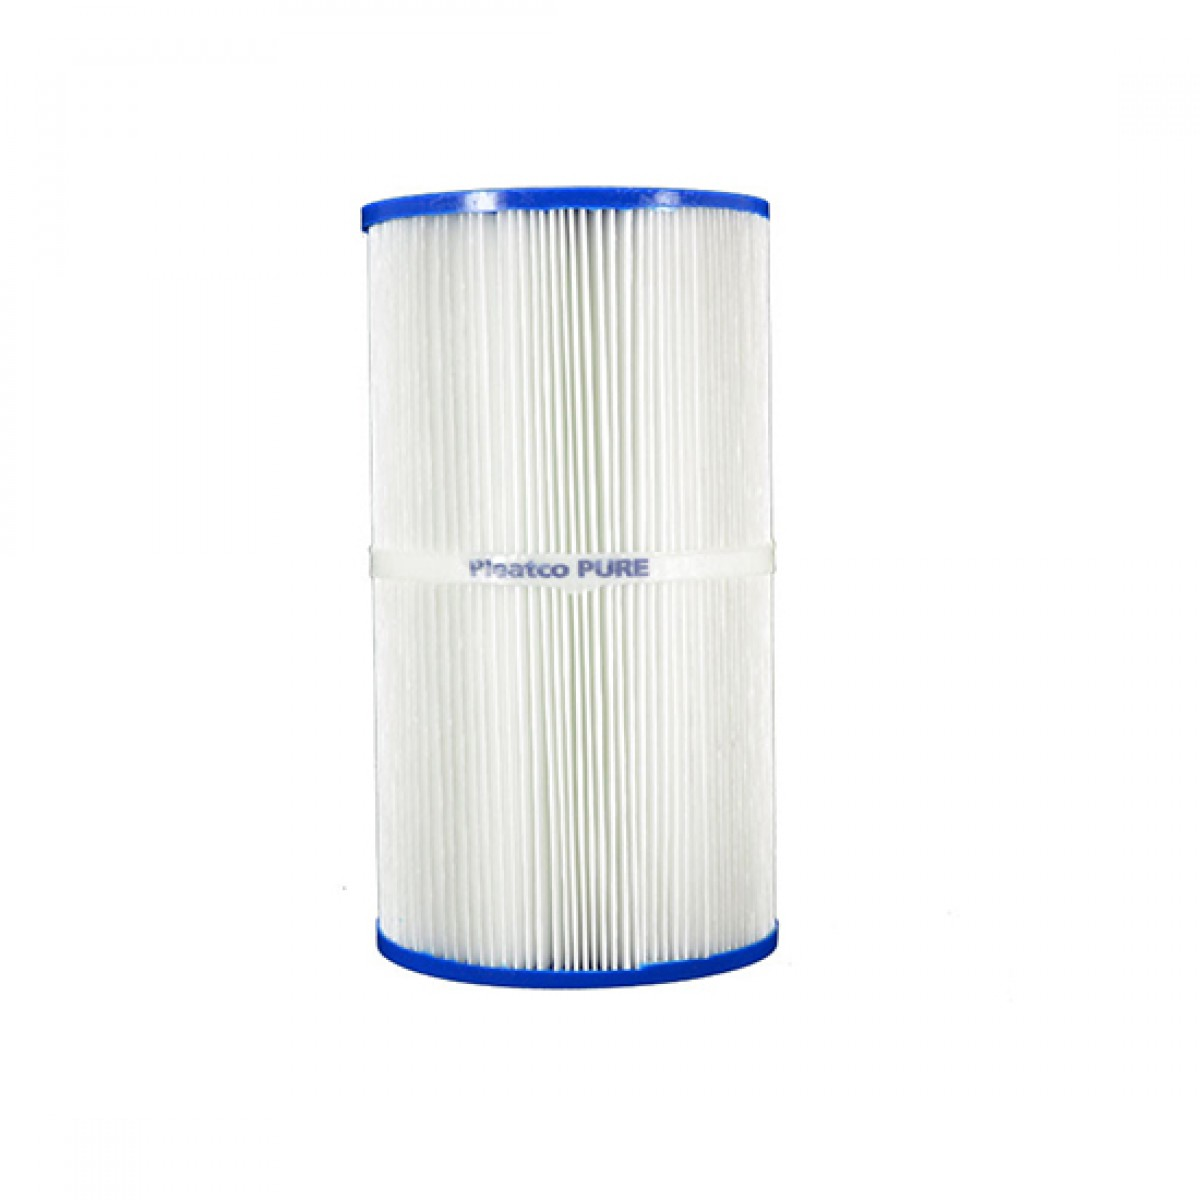 Jacuzzi Pool Filter Replacement Parts Tier1 Pas 1332 Replacement Pool And Spa Filter